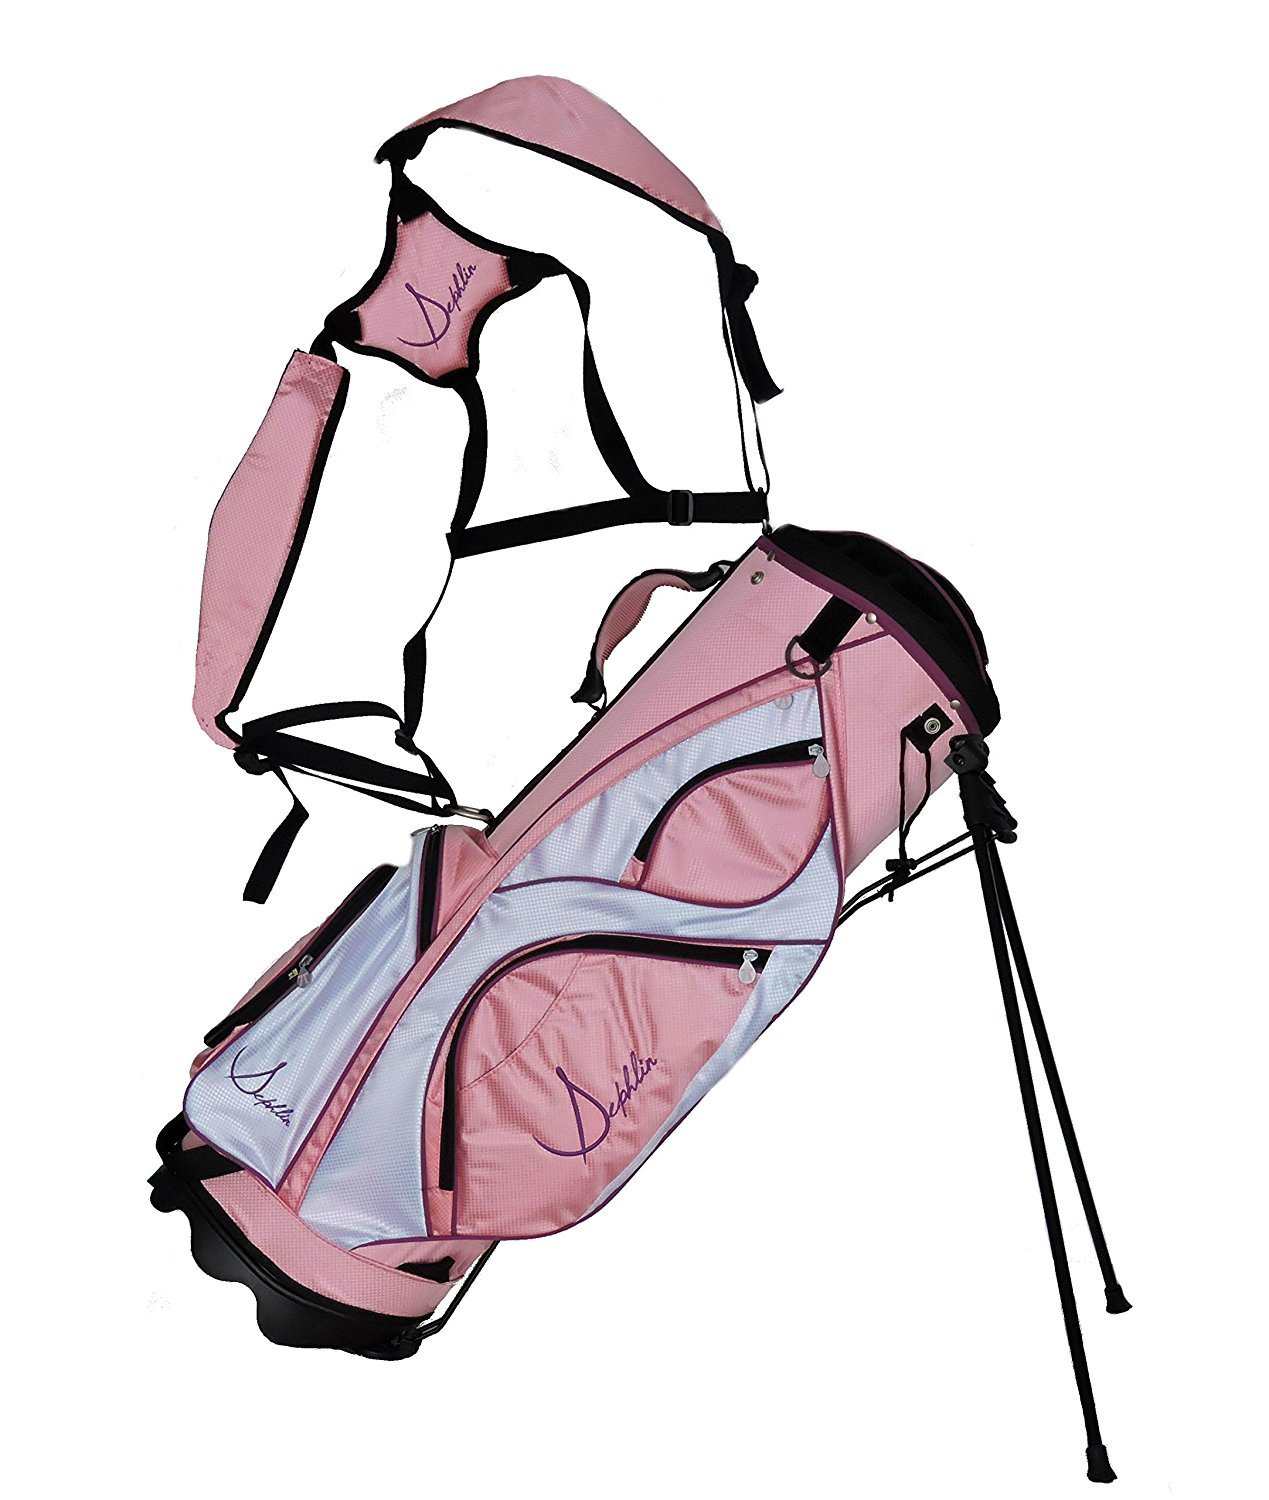 Golf Bag Drawing at GetDrawings.com | Free for personal use Golf Bag Golf Bag Cartoon Pic on cartoon hat, cartoon men, cartoon bowling bag, cartoon camera, cartoon star, cartoon golfer, cartoon tennis bag, cartoon gloves, cartoon nut sack, cartoon wine bag, cartoon pool bag, cartoon butterfly, cartoon putter, cartoon school bag, cartoon beach bag, cartoon clubs, cartoon mother, cartoon traveling bag, cartoon baseball bag, cartoon shorts,